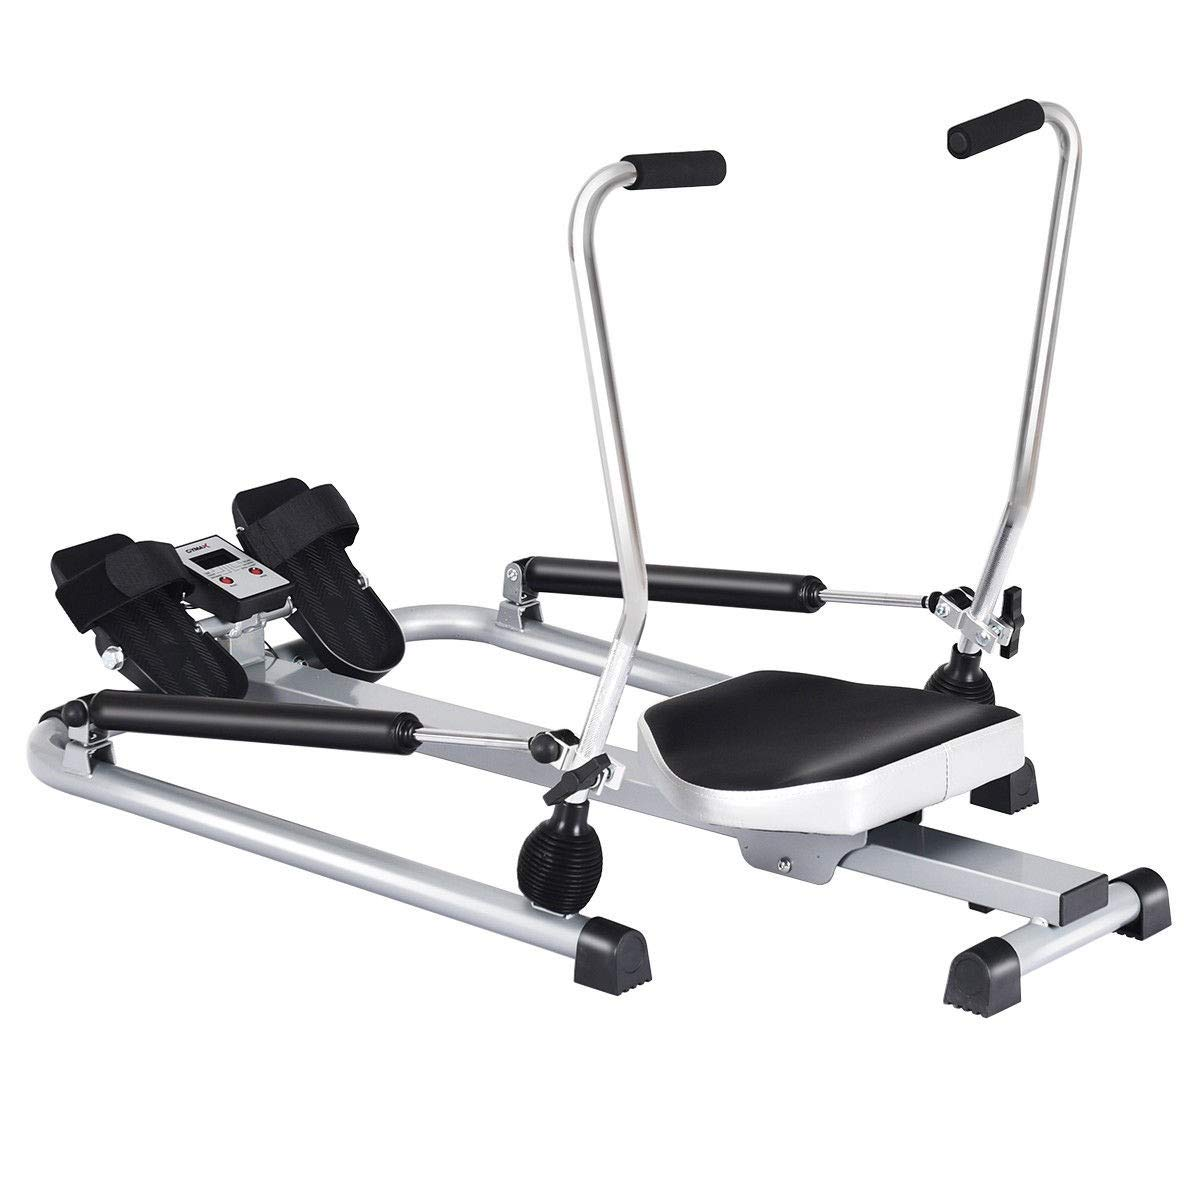 MUVR lab Exercise Adjustable Double Hydraulic Resistance Rowing Machine